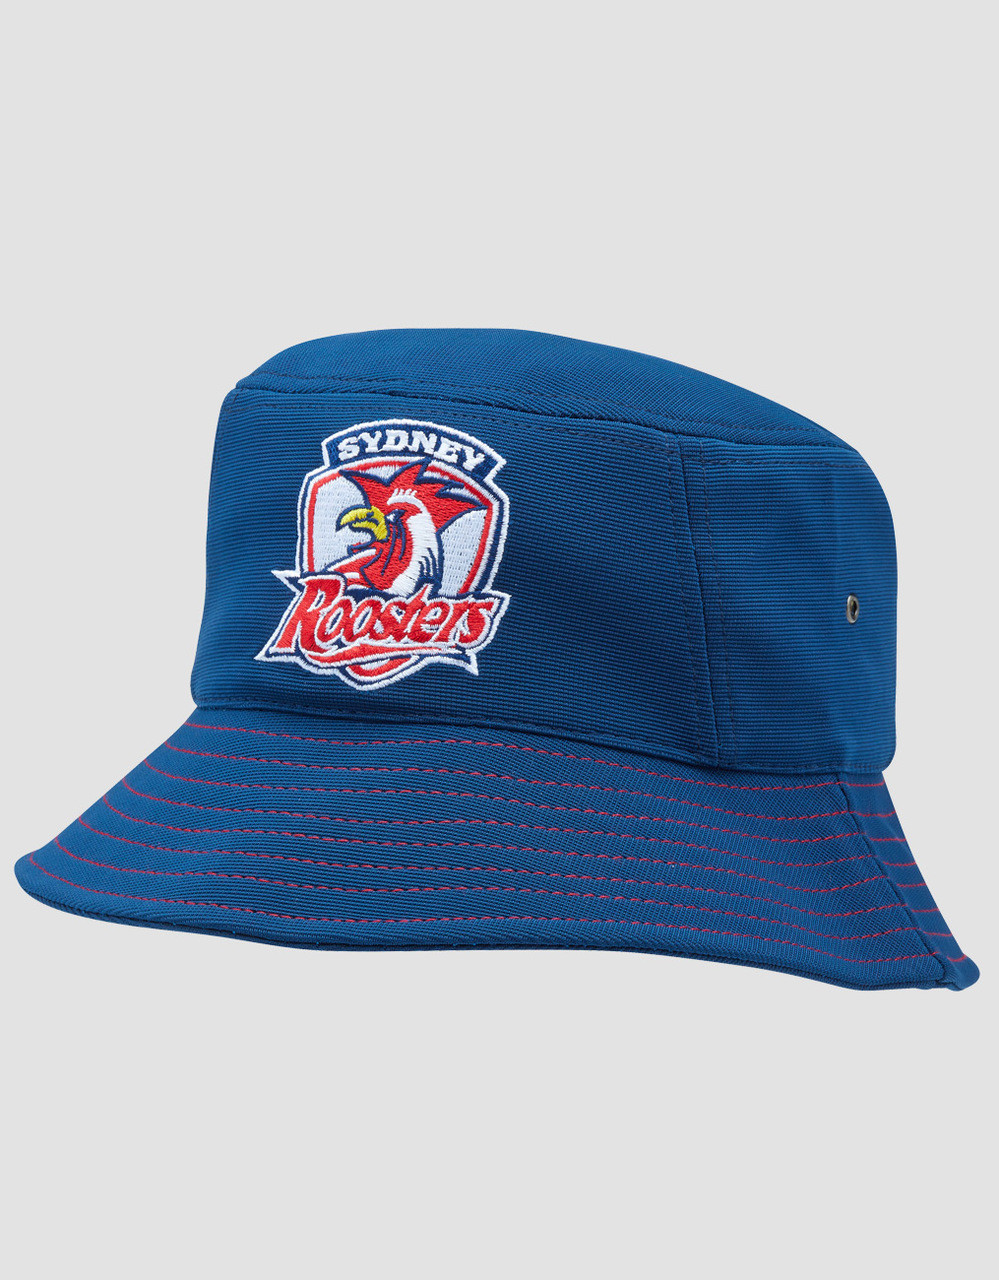 Sydney Roosters 2018 Classic Polytwill Bucket Hat - Roosters Shop aad7863f428